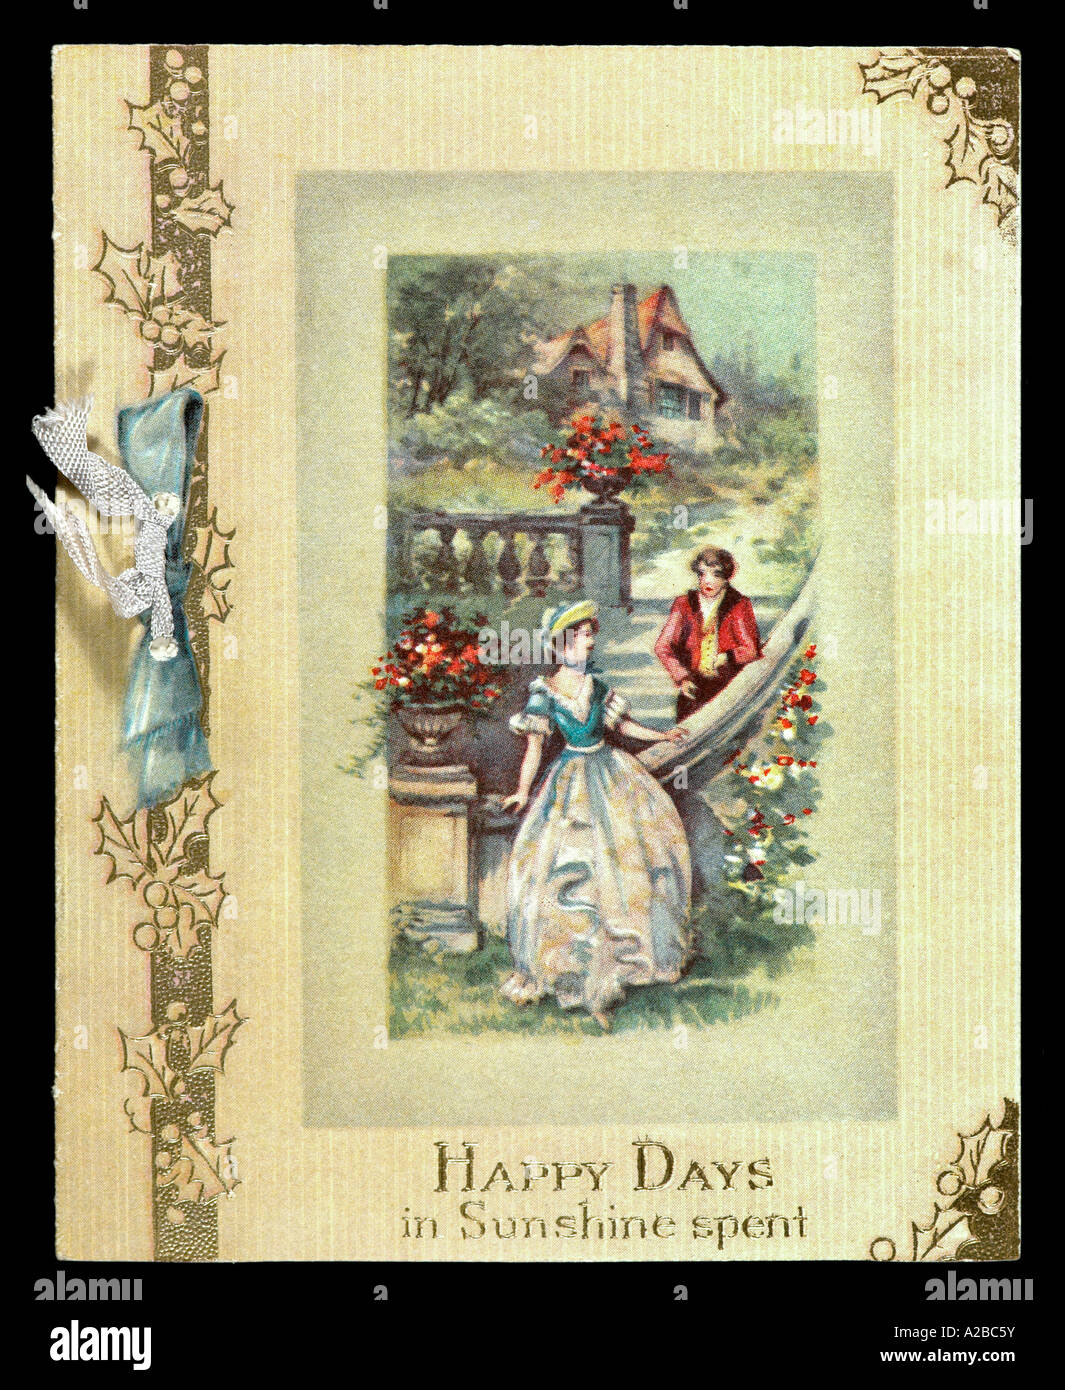 Vintage Early 20th Century Christmas Card - Stock Image